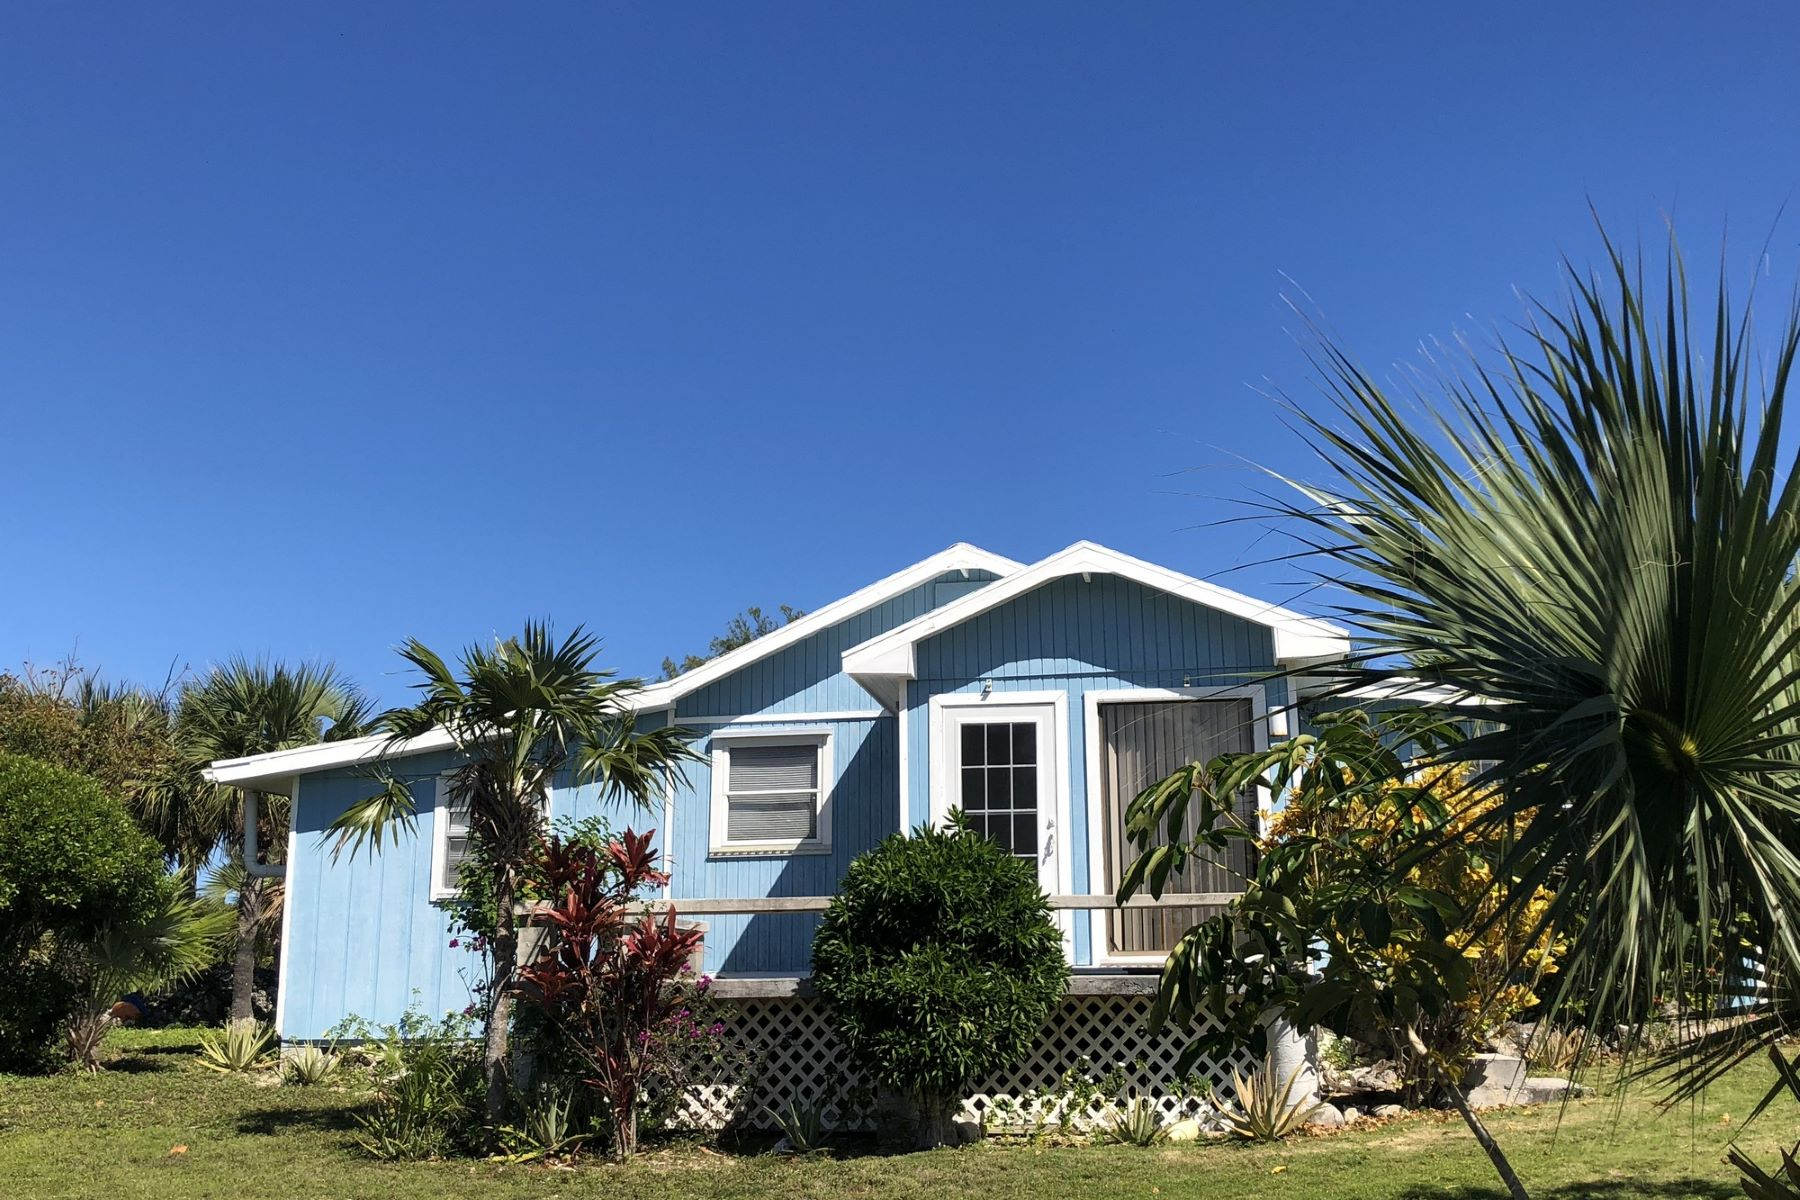 Single Family Home for Sale at Bali Hai & Tahiti Cottage Green Turtle Cay, Abaco, Bahamas